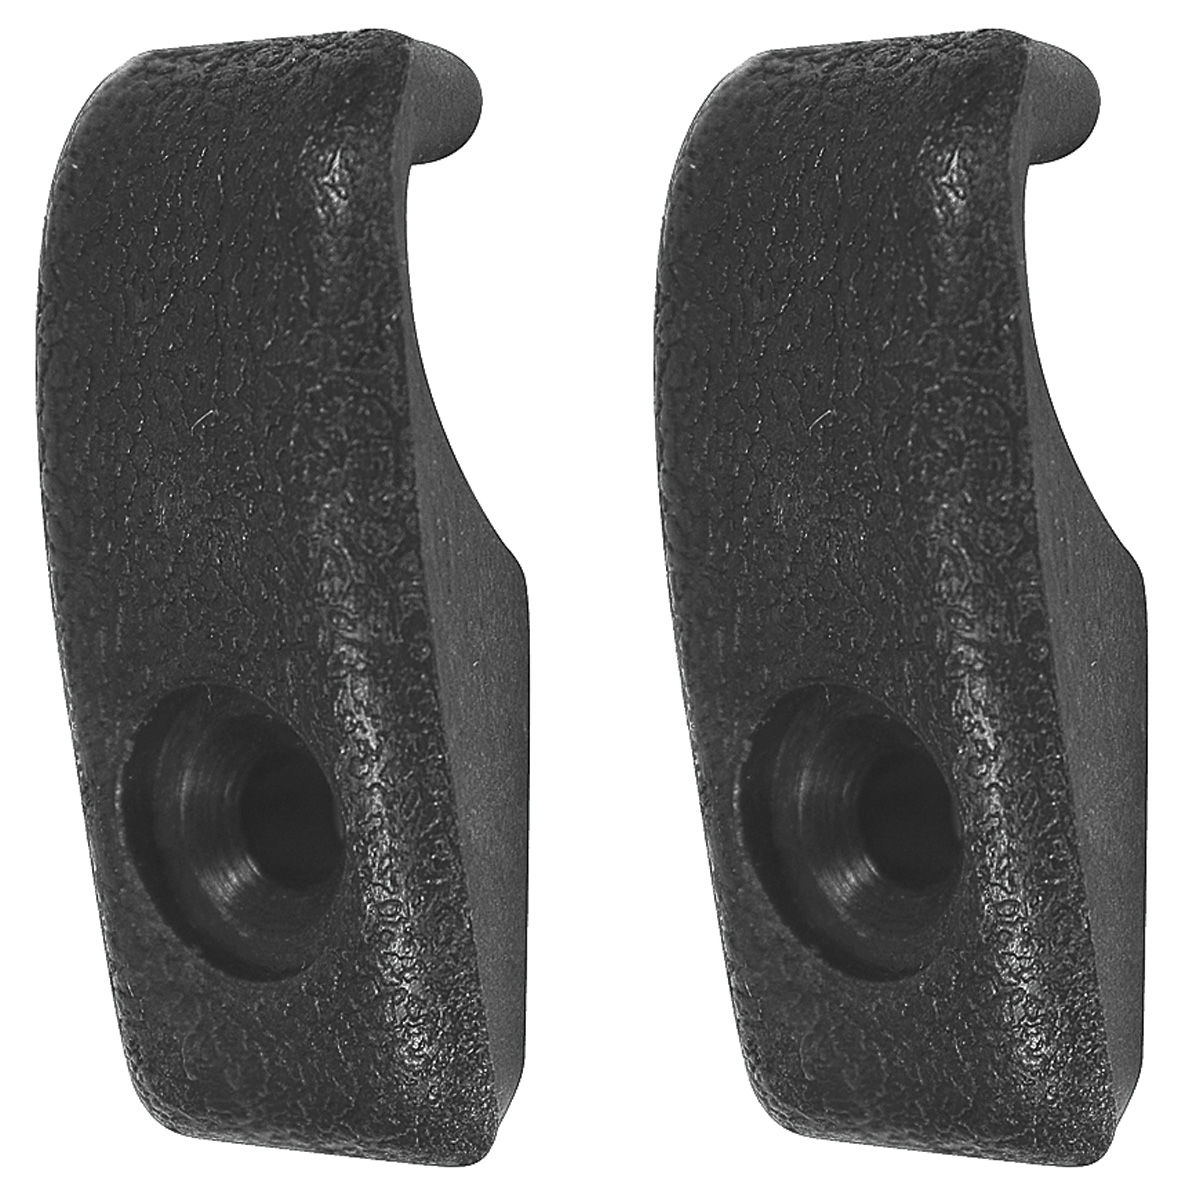 Coat Hook, Interior, 1964-78 GM, Black Plastic, Pair